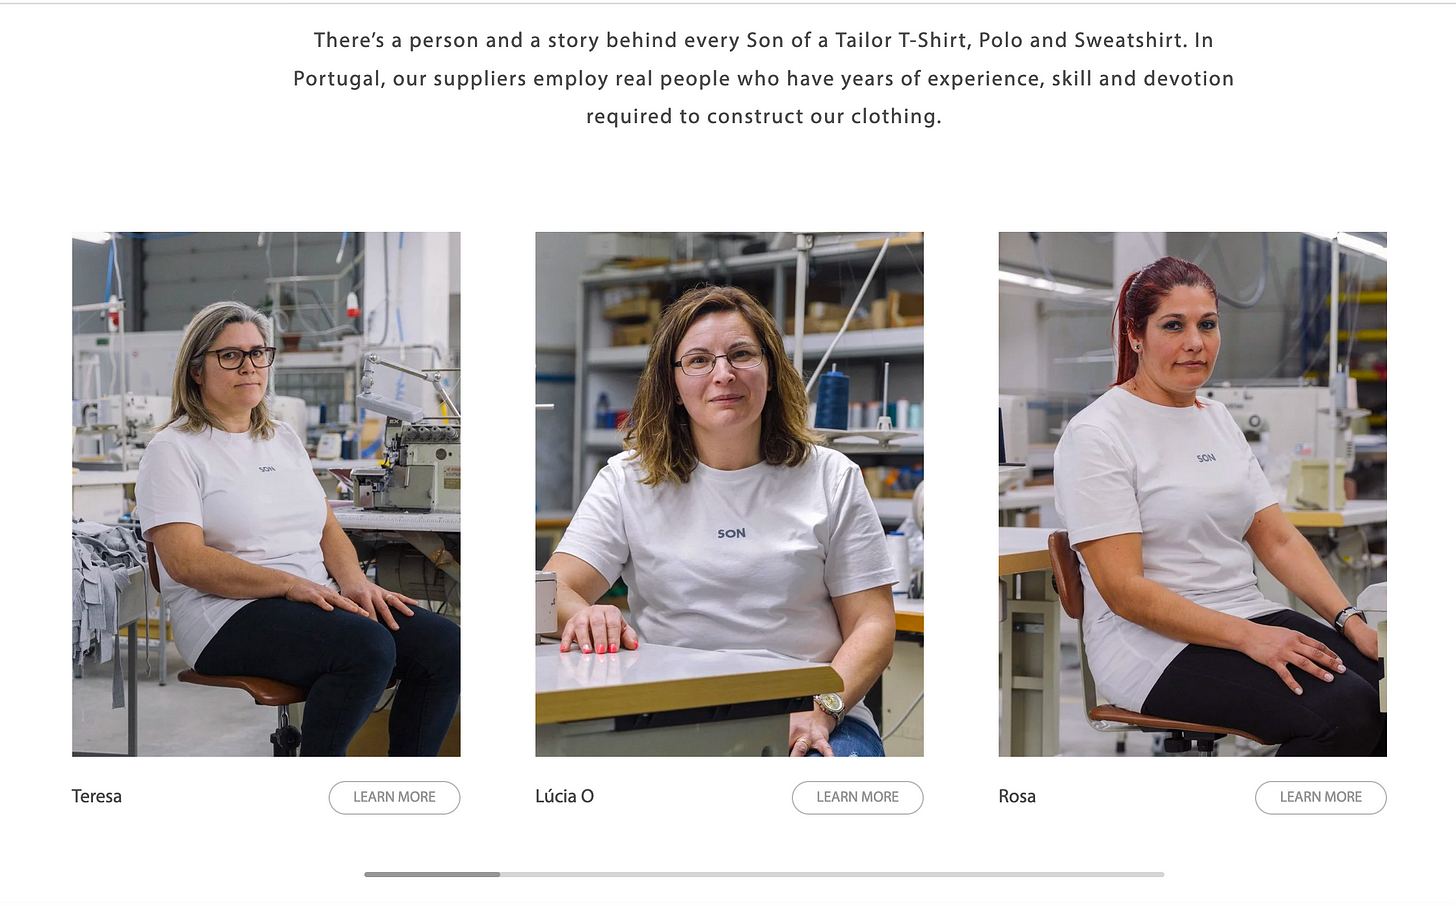 Meet The People Behind The Garments  There's a person and a story behind every Son of a Tailor T-Shirt, Polo and Sweatshirt. In Portugal, our suppliers employ real people who have years of experience, skill and devotion required to construct our clothing.